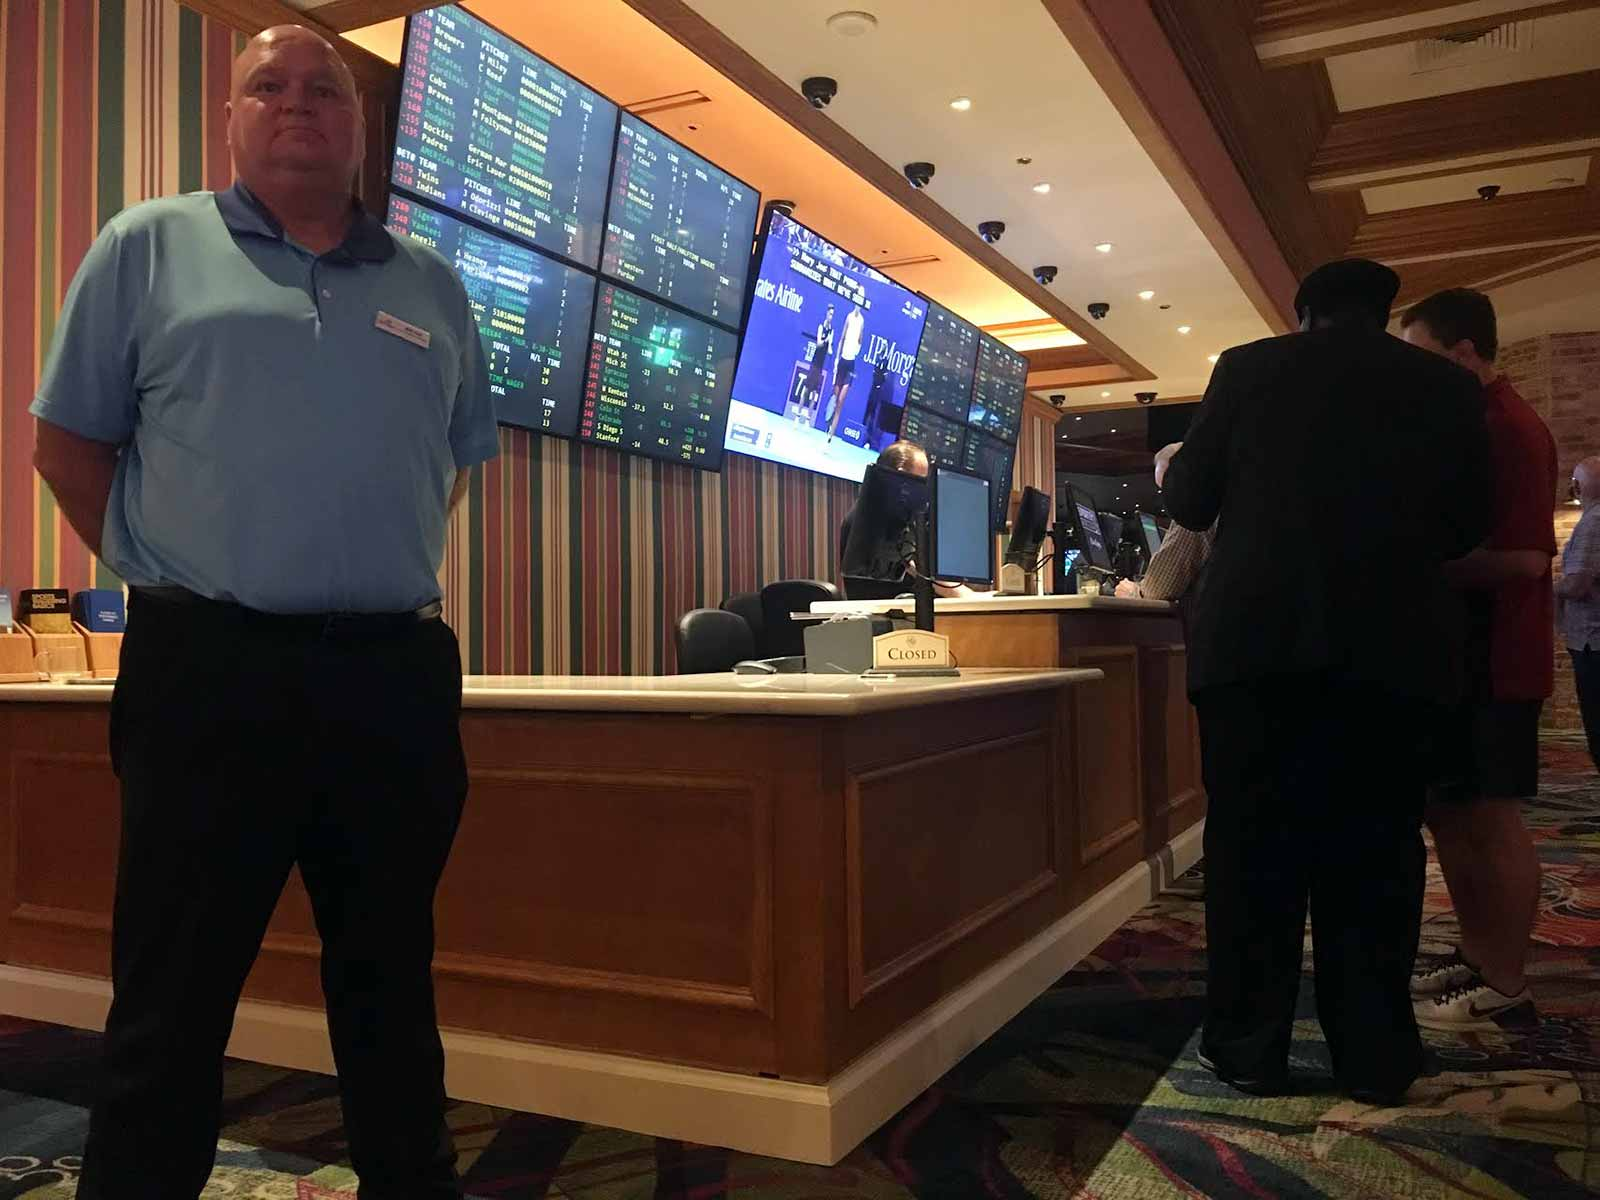 Beau Rivage sports book director Will Hall